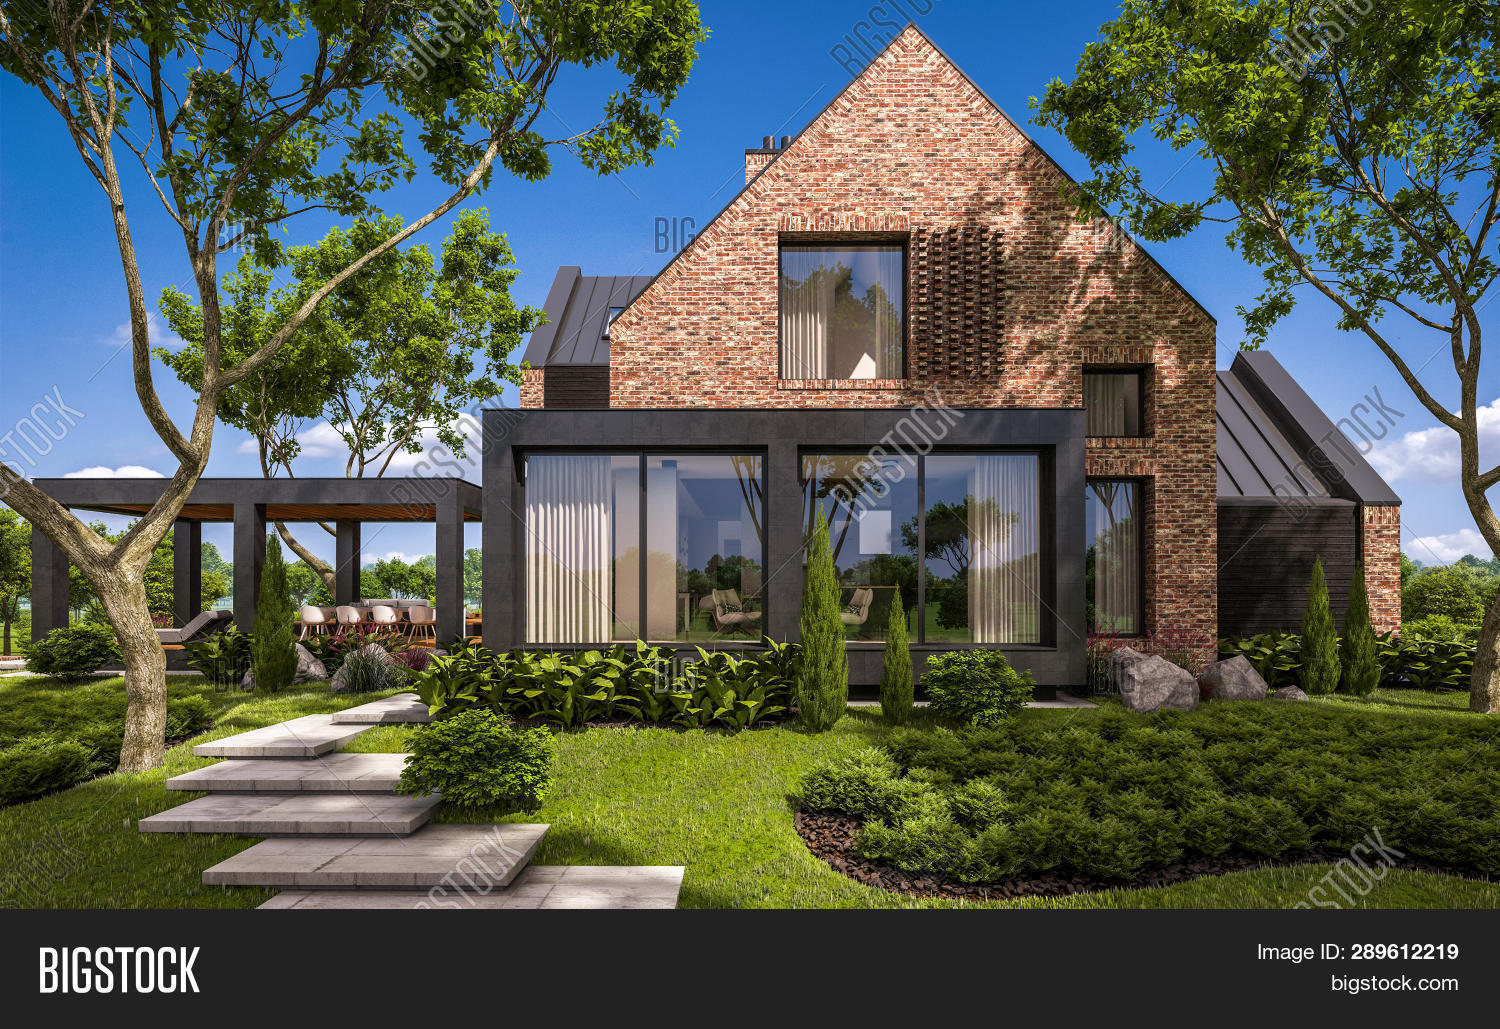 3D,architecture,beautiful,bricks,building,chalet,clinker,concept,construction,contemporary,country,day,design,dwelling,entrance,estate,expensive,exterior,garage,garden,grass,green,home,house,housing,illustration,landscape,lawn,lifestyle,luxury,modern,new,outdoor,patio,perspective,pond,project,property,realty,rendering,residential,roof,sky,stock,stone,terrace,trees,view,villa,wood